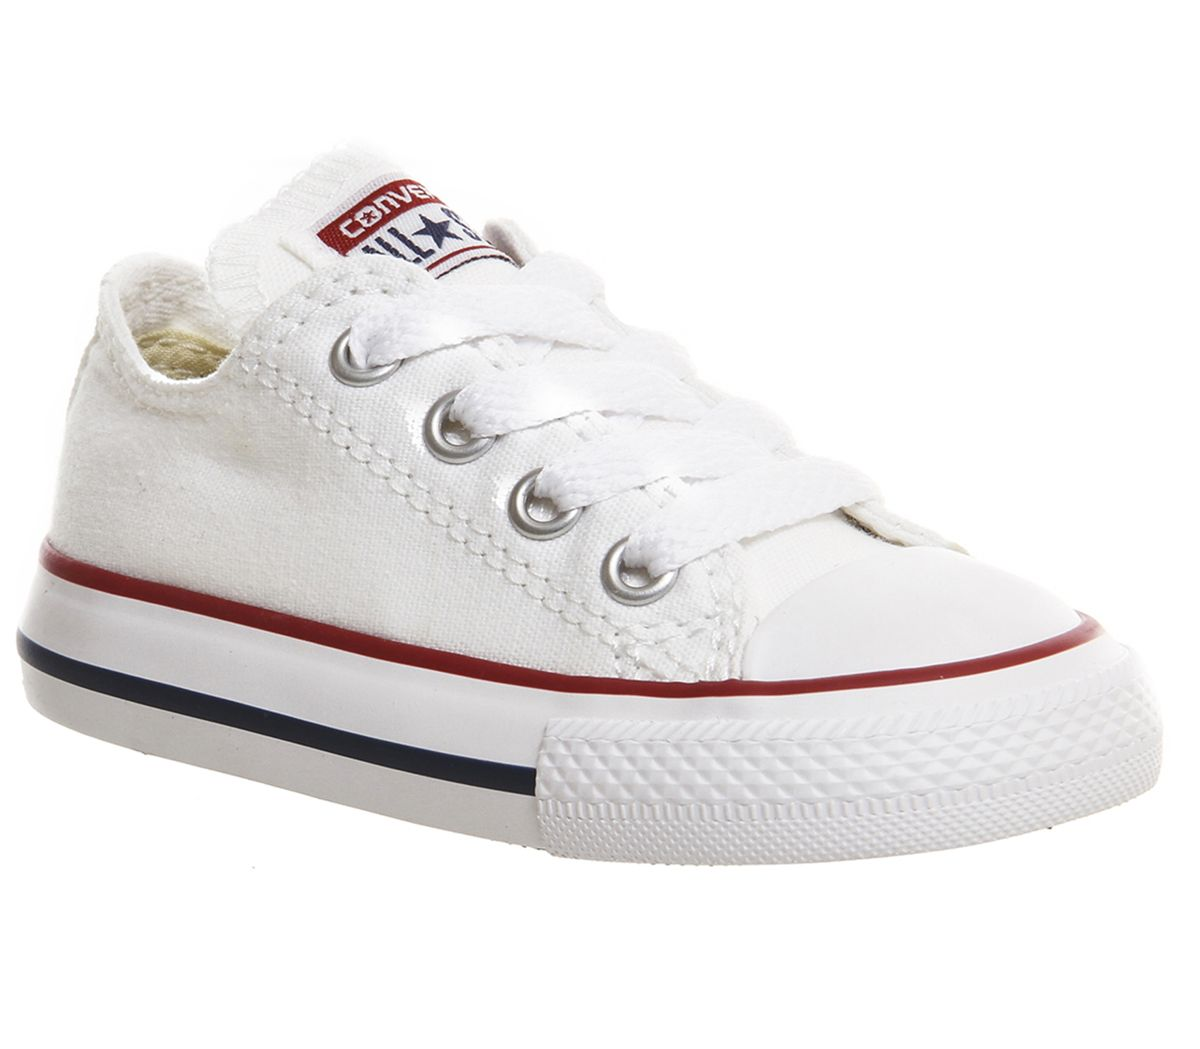 3393fc77849c4 Détails sur Enfants Converse All Star Basse Infant Shoes White Kids-  afficher le titre d origine